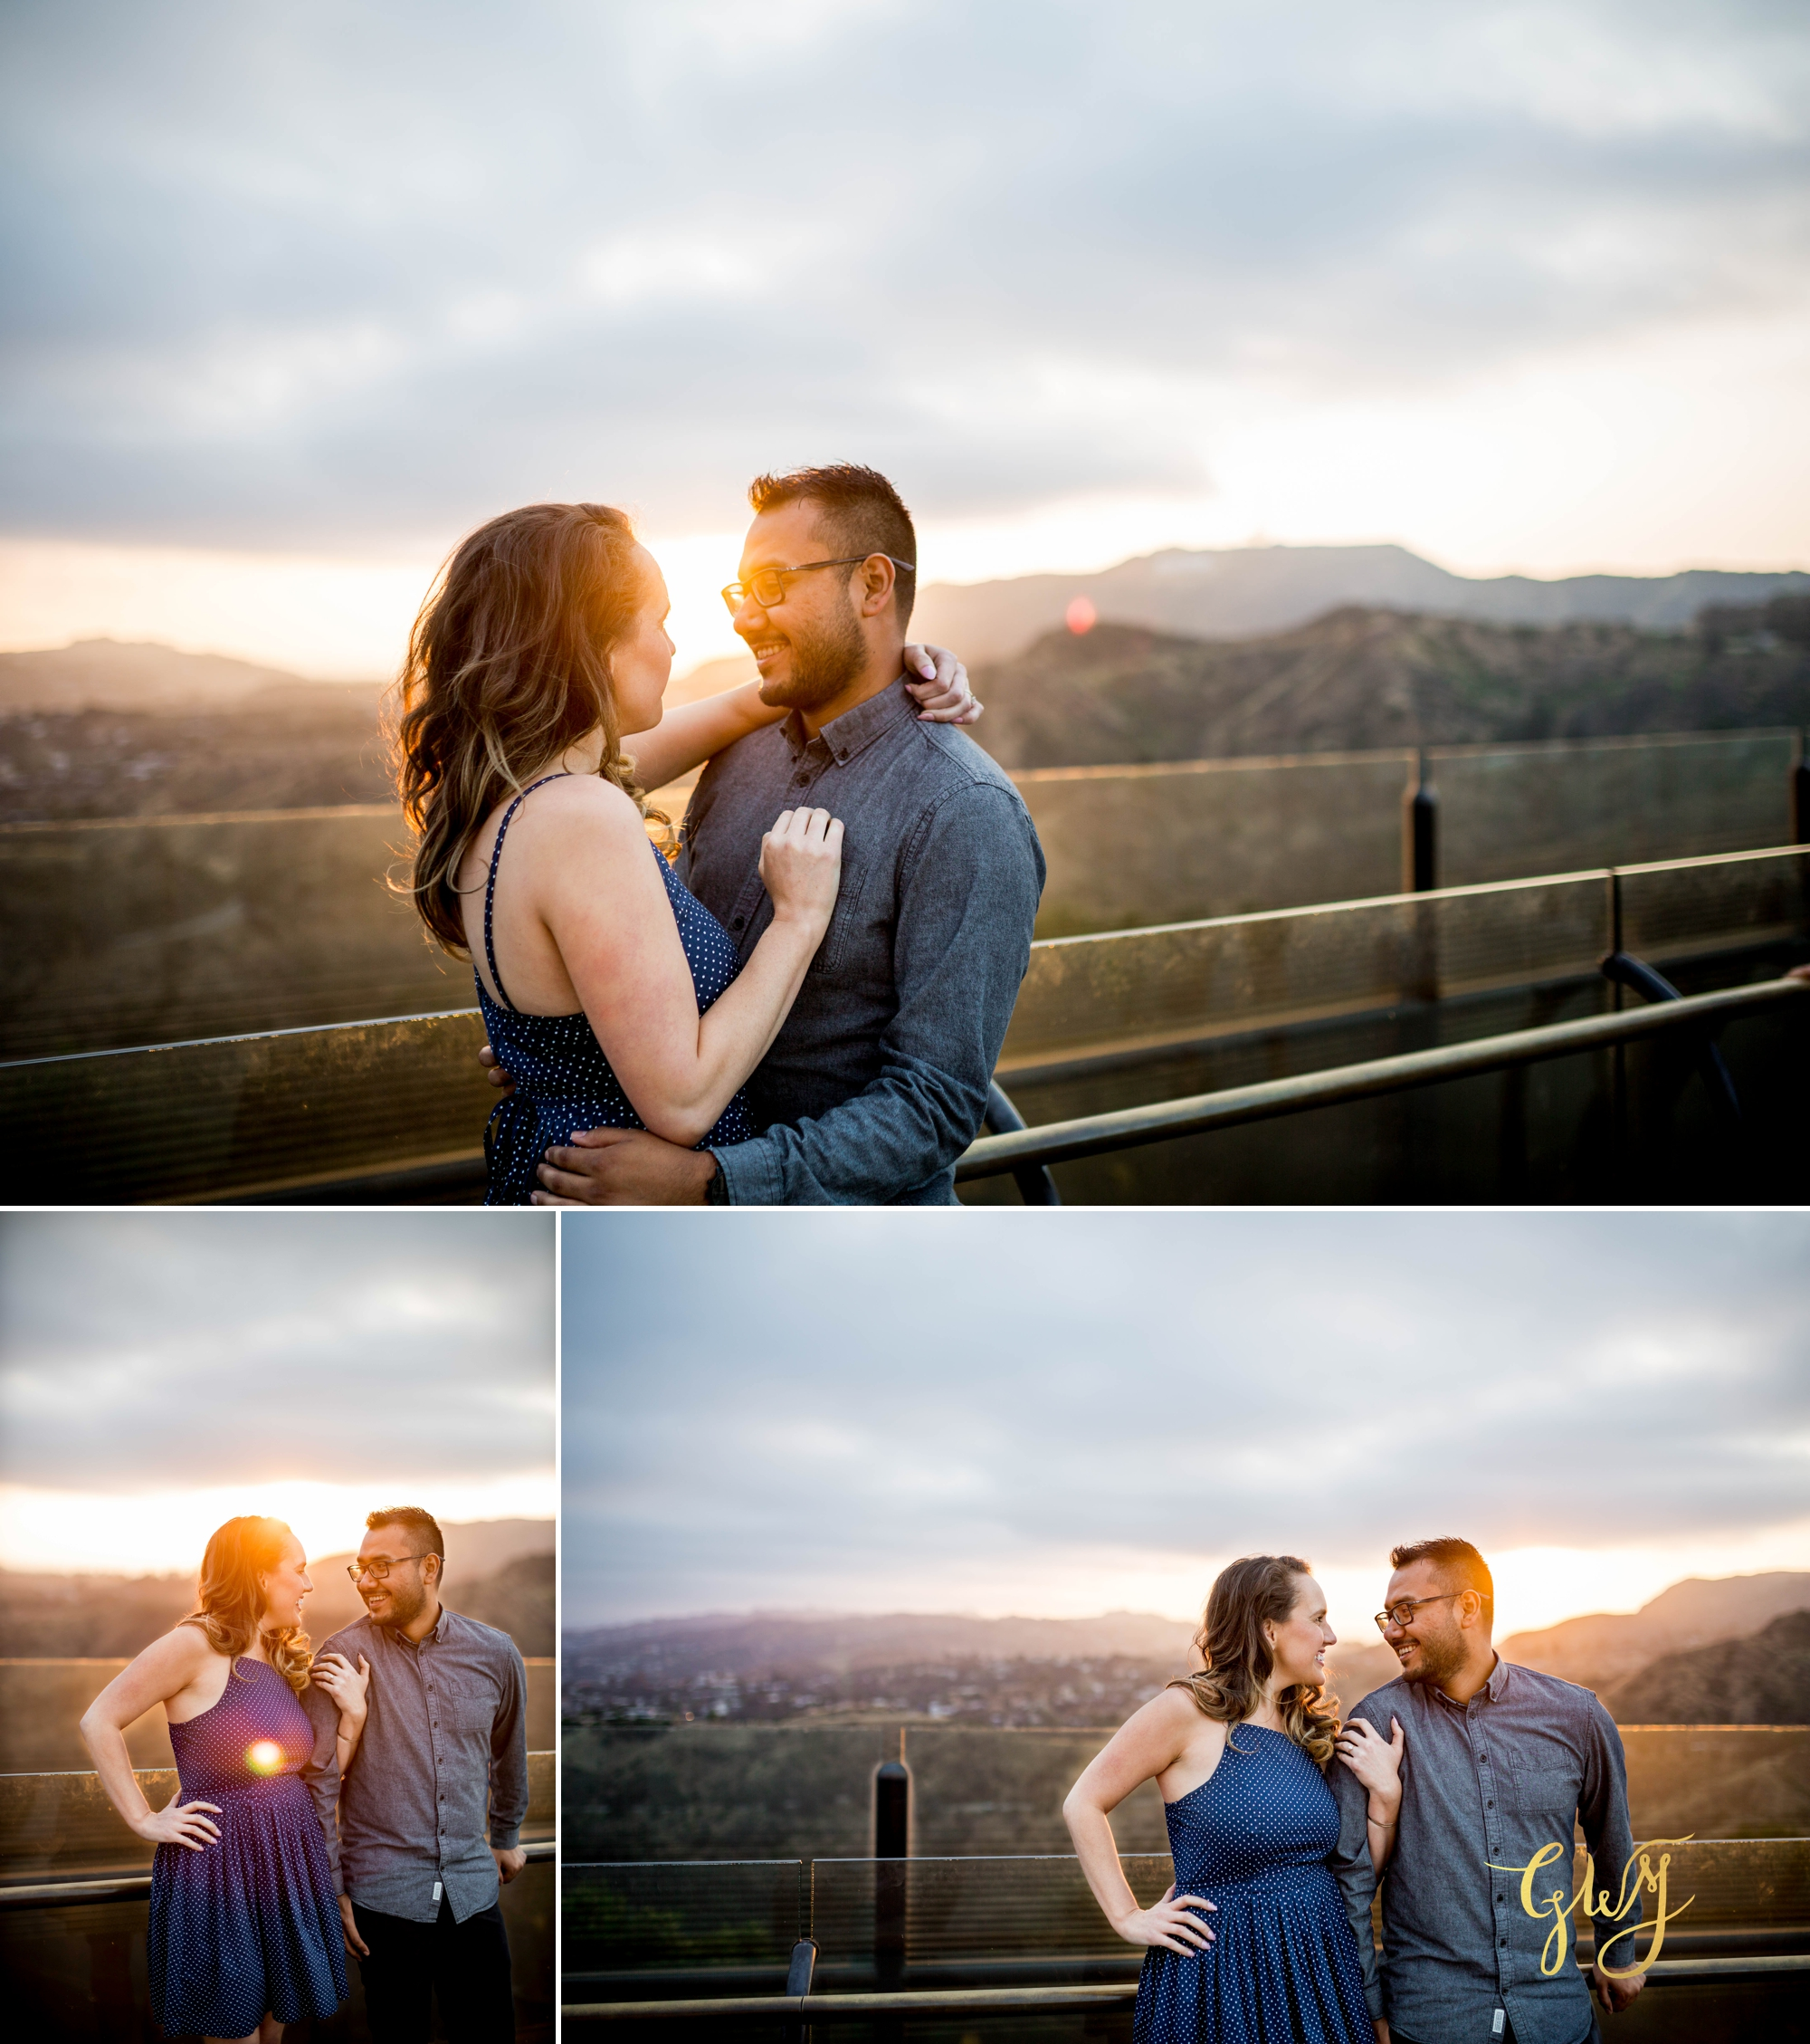 Emily + Gilbert's Griffith Observatory LA Dreamy Sunset Engagement Session by Glass Woods Media 18.jpg